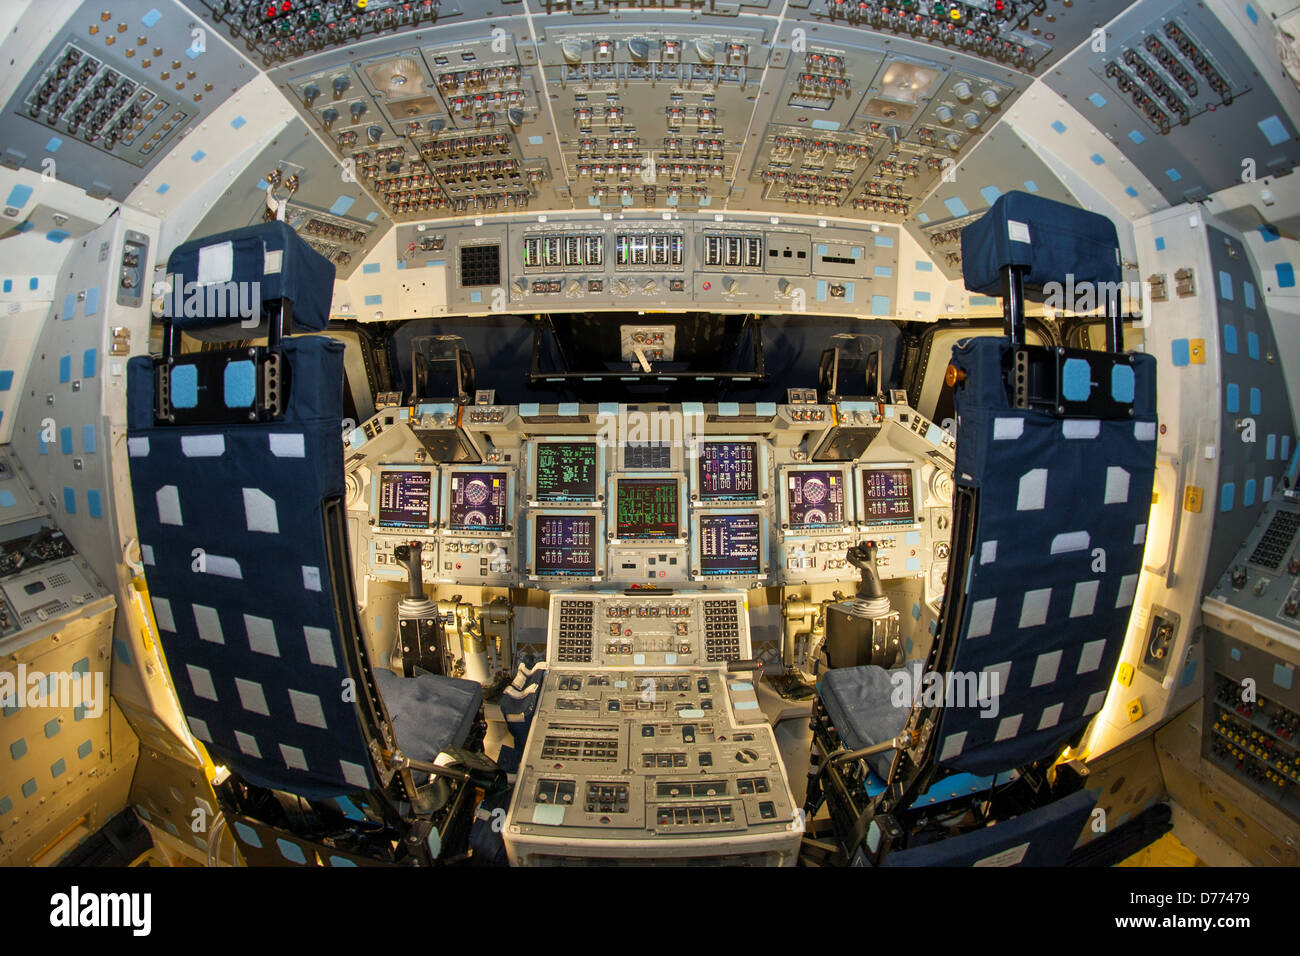 space shuttle discovery cockpit - photo #25